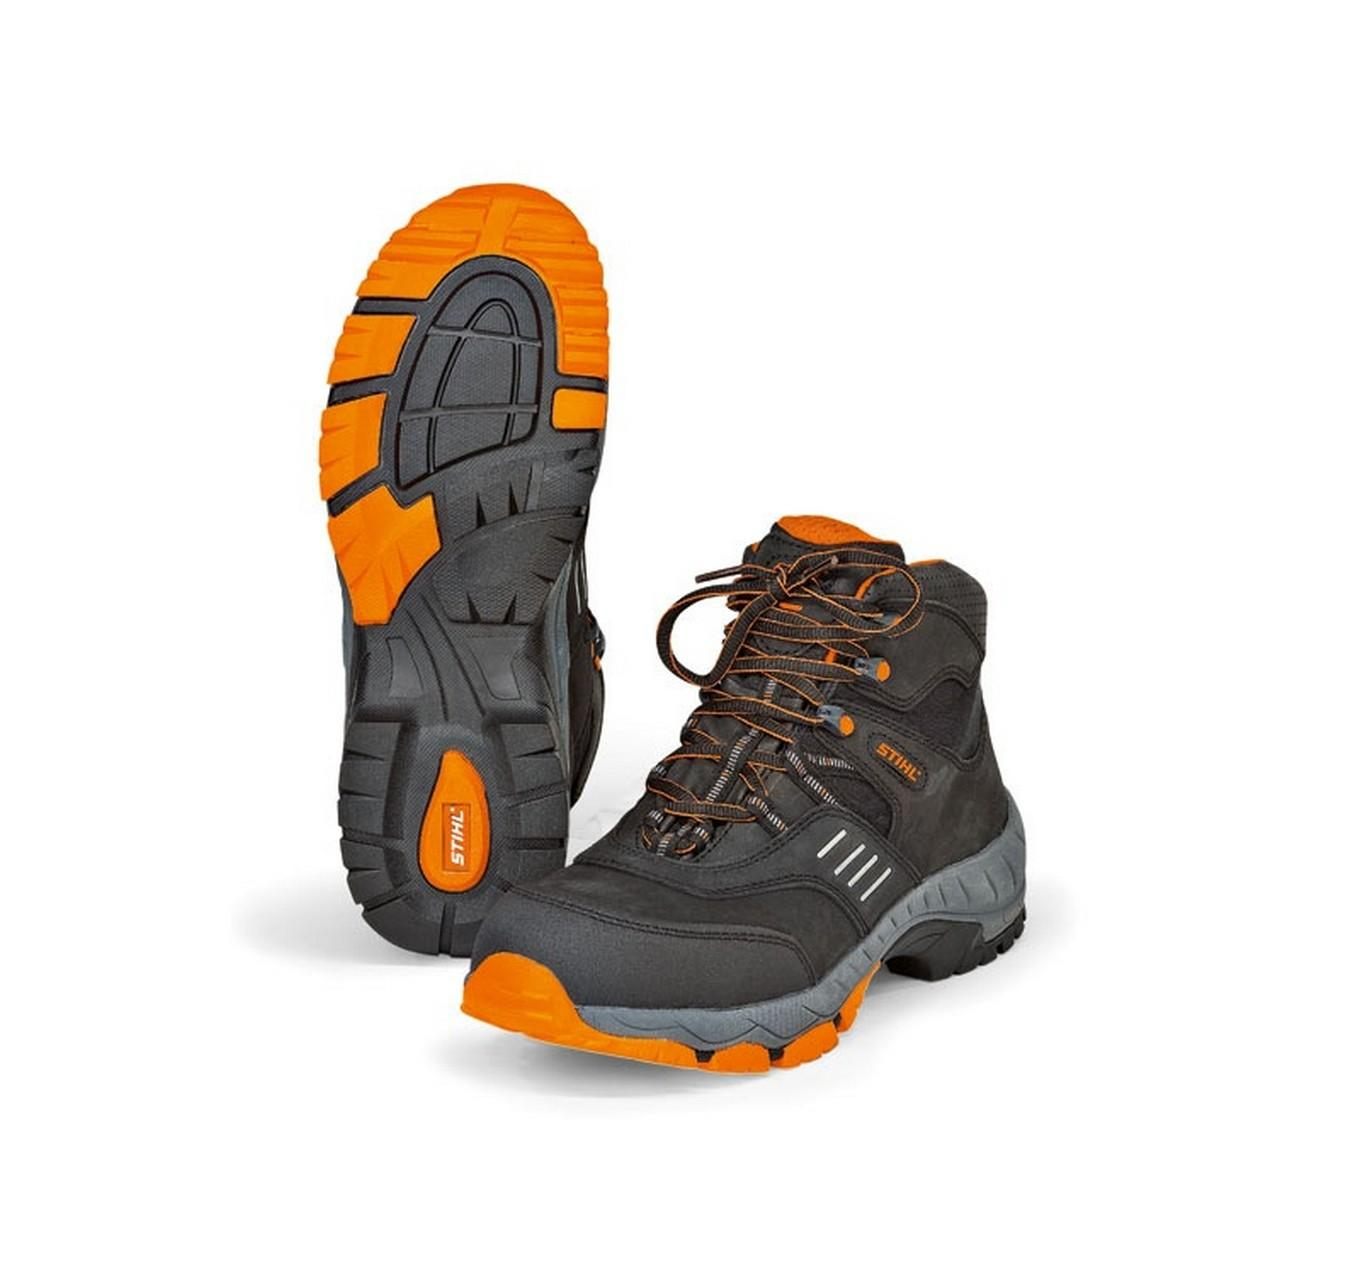 WORKER S3 Safety Boots 10.5